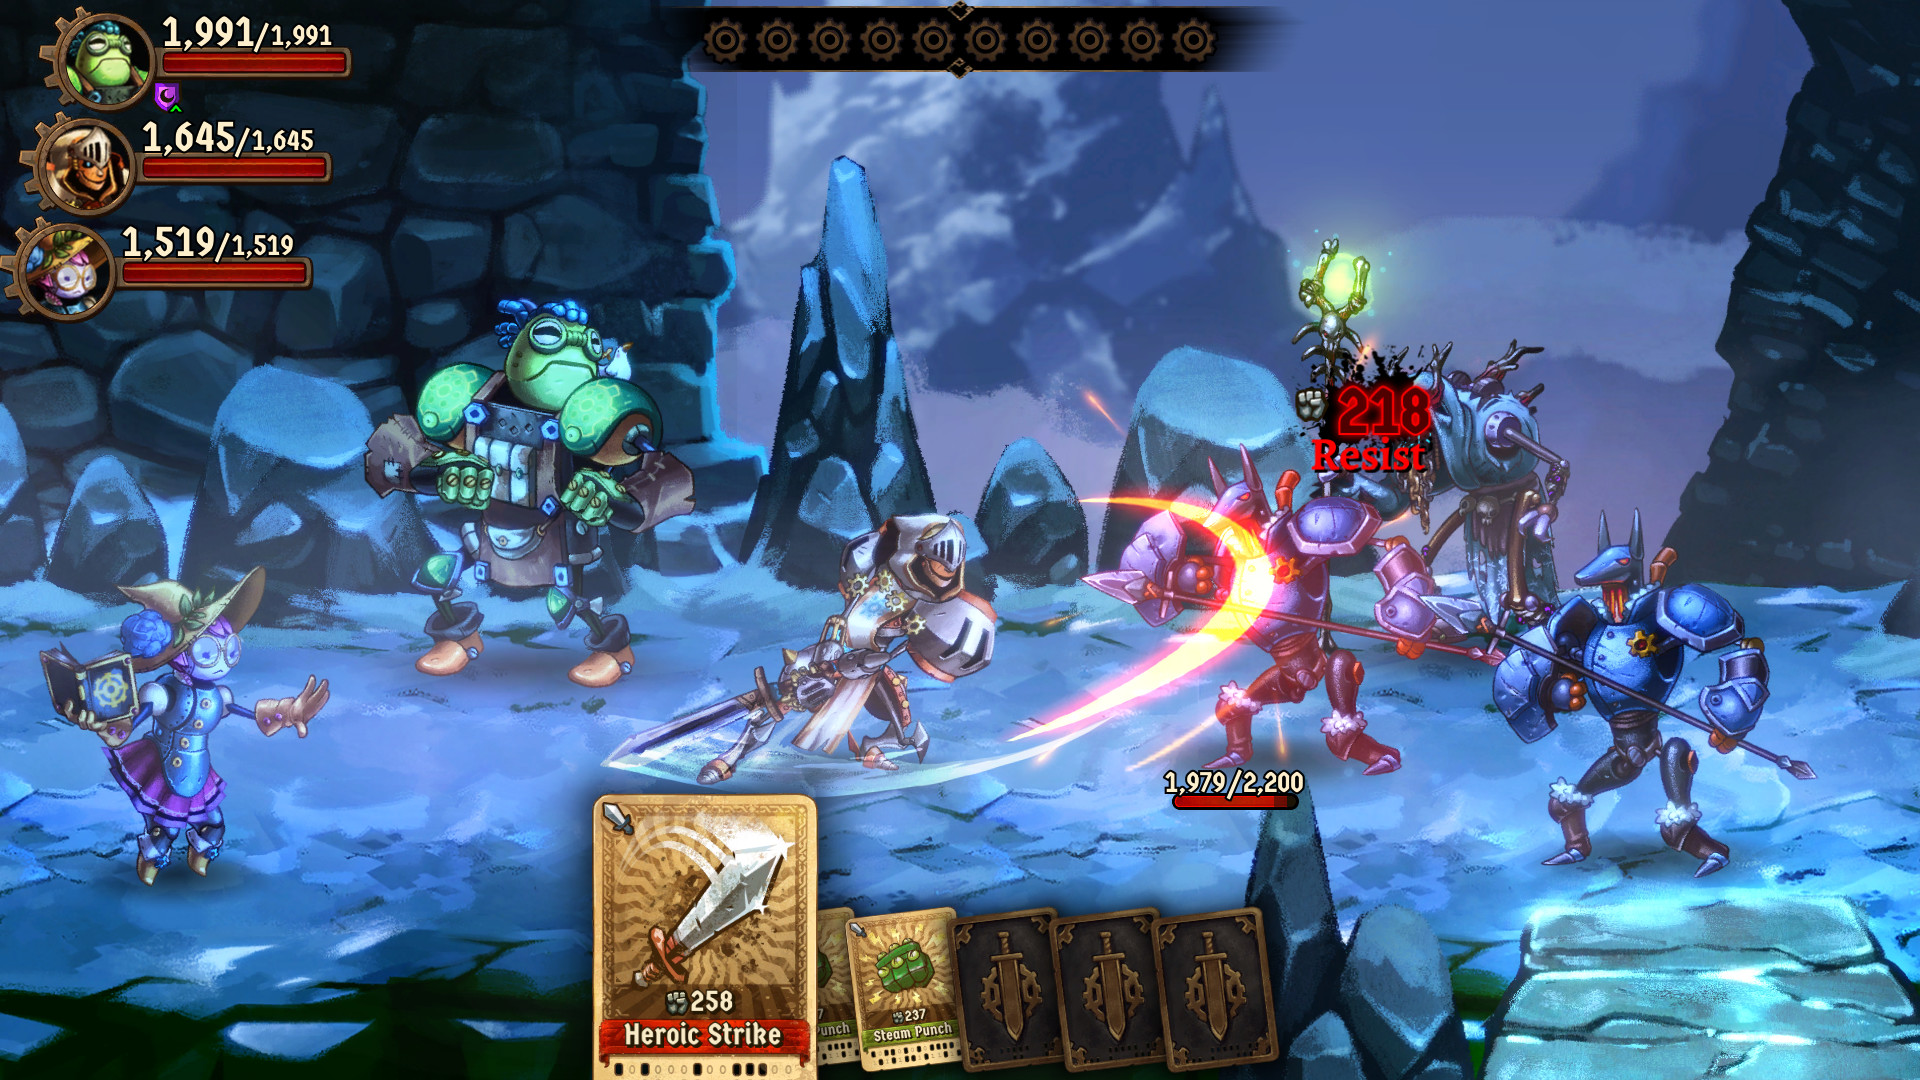 SteamWorld Quest: Hand of Gilgamech Screenshot 3